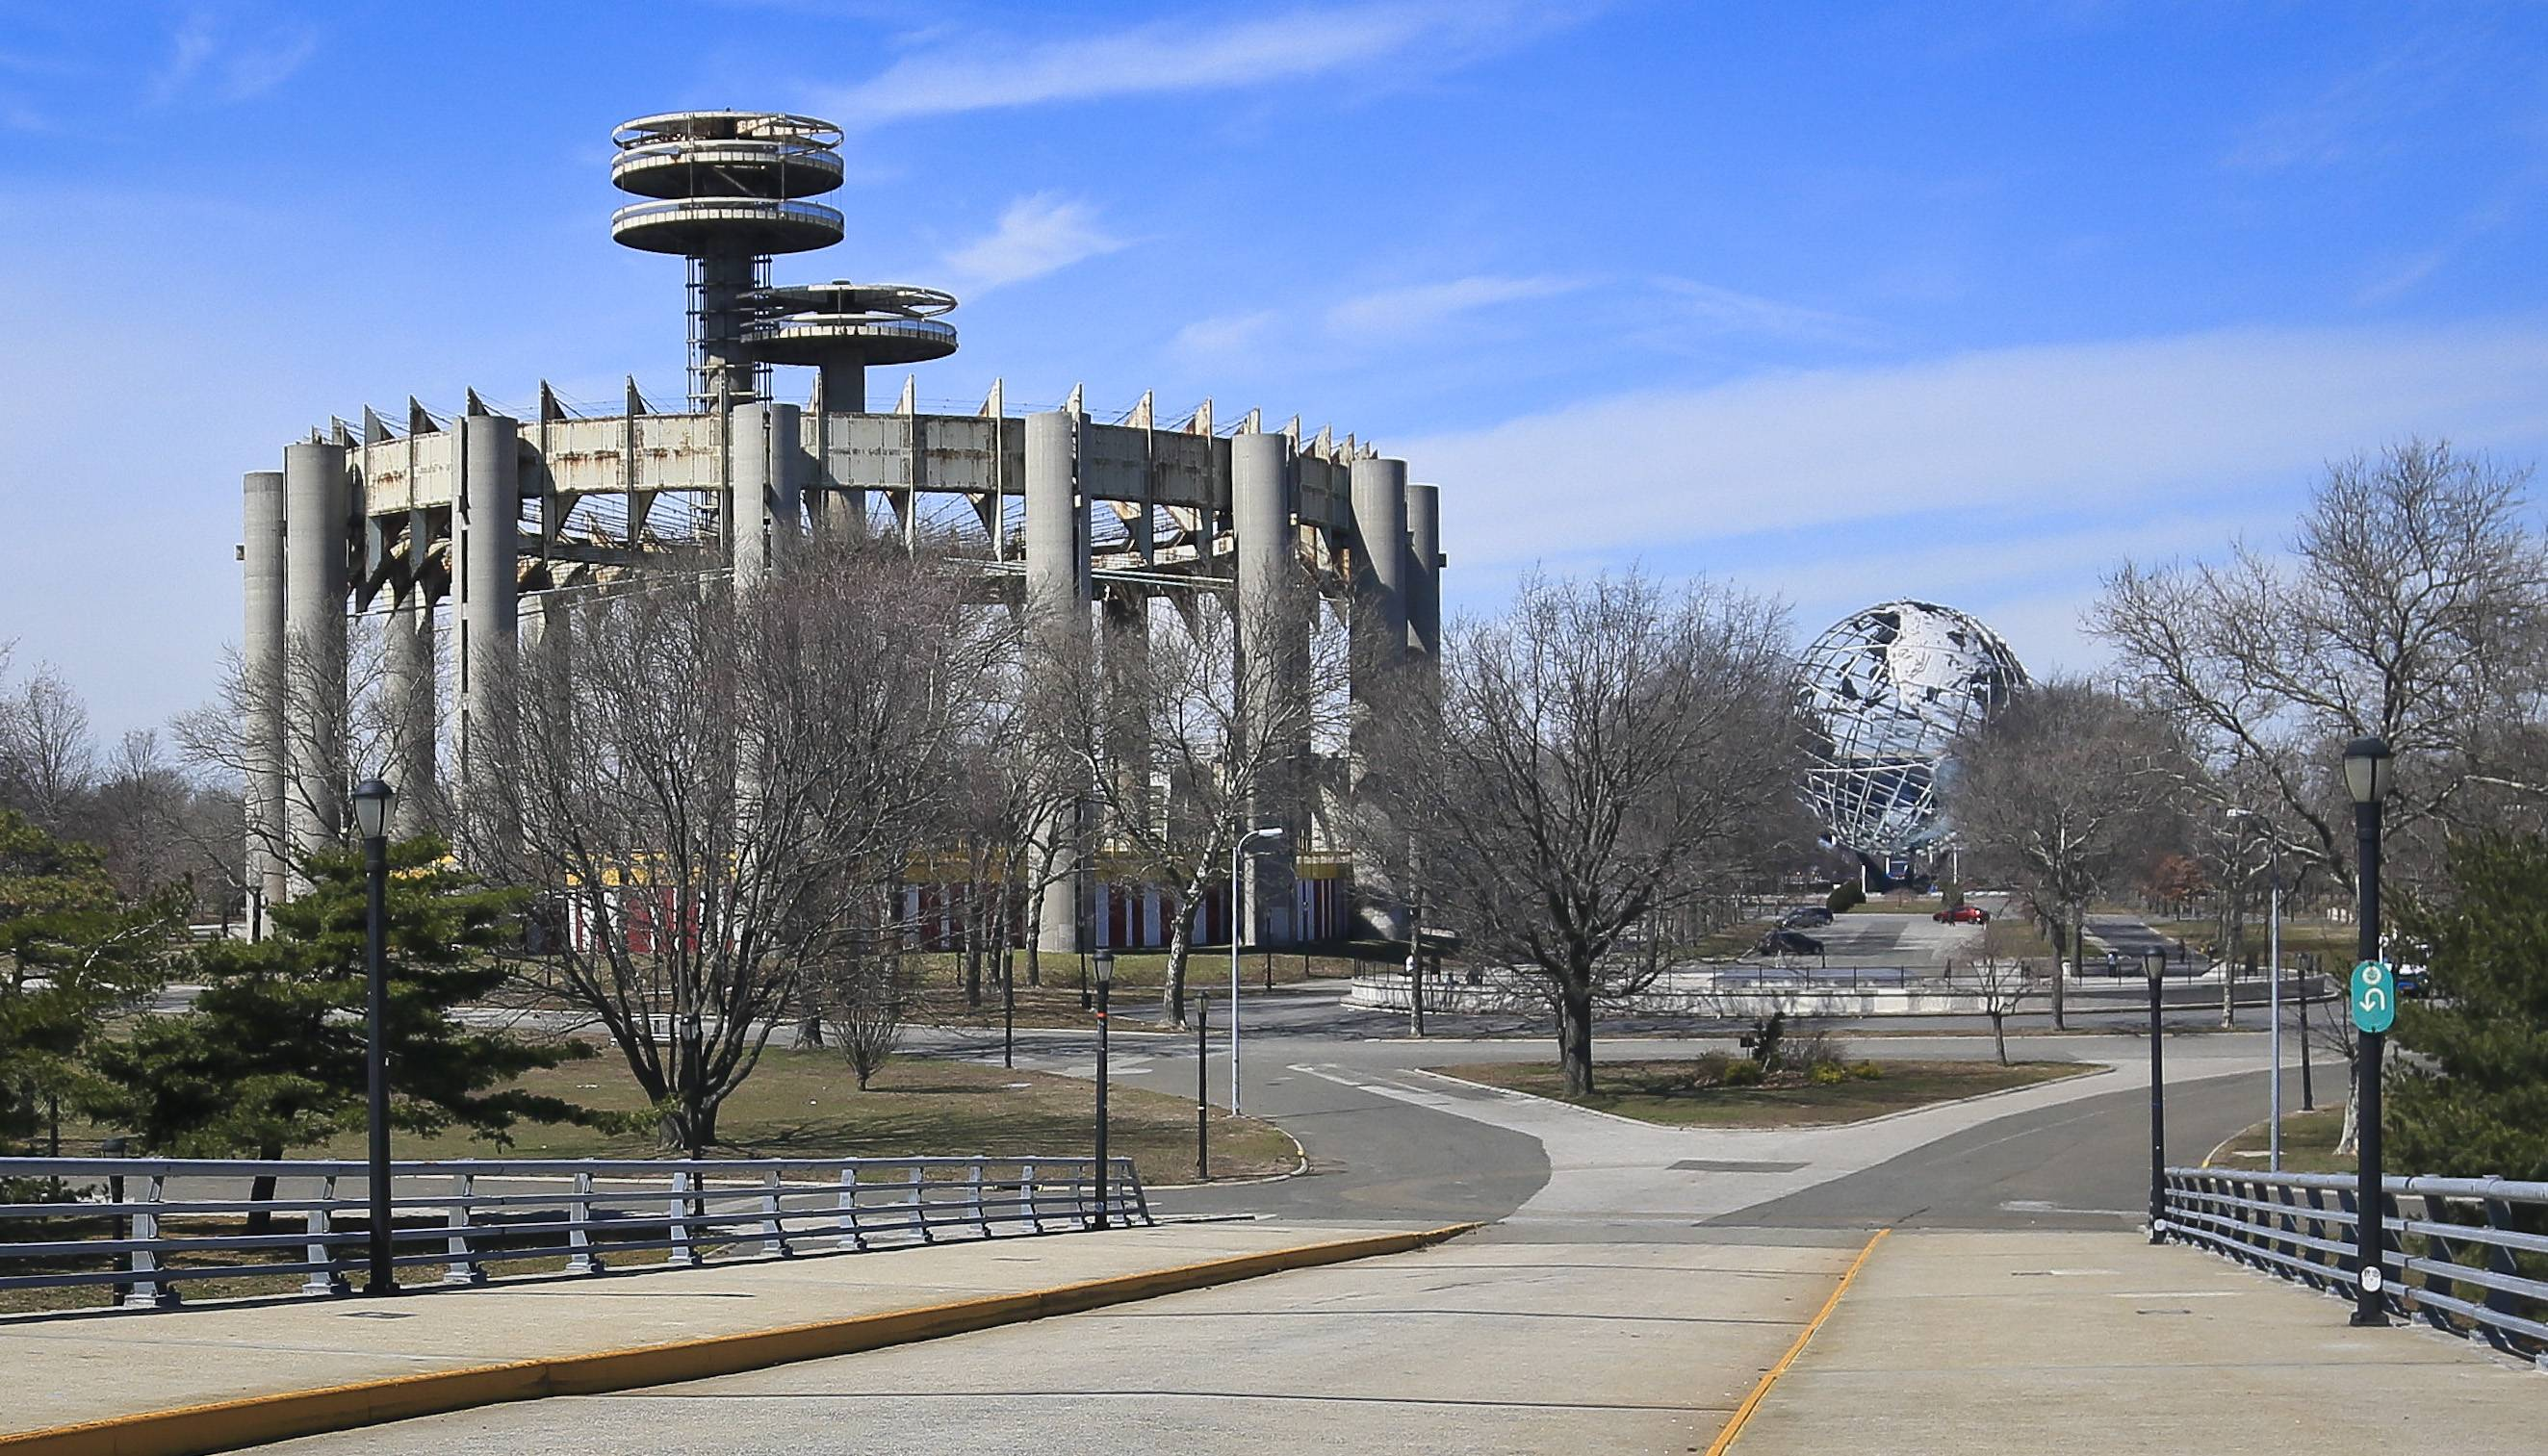 A space-age tower, left, and a restored giant metal globe called the Unisphere, remain as original structures from the 1964 World's Fair in the Queens borough of New York.